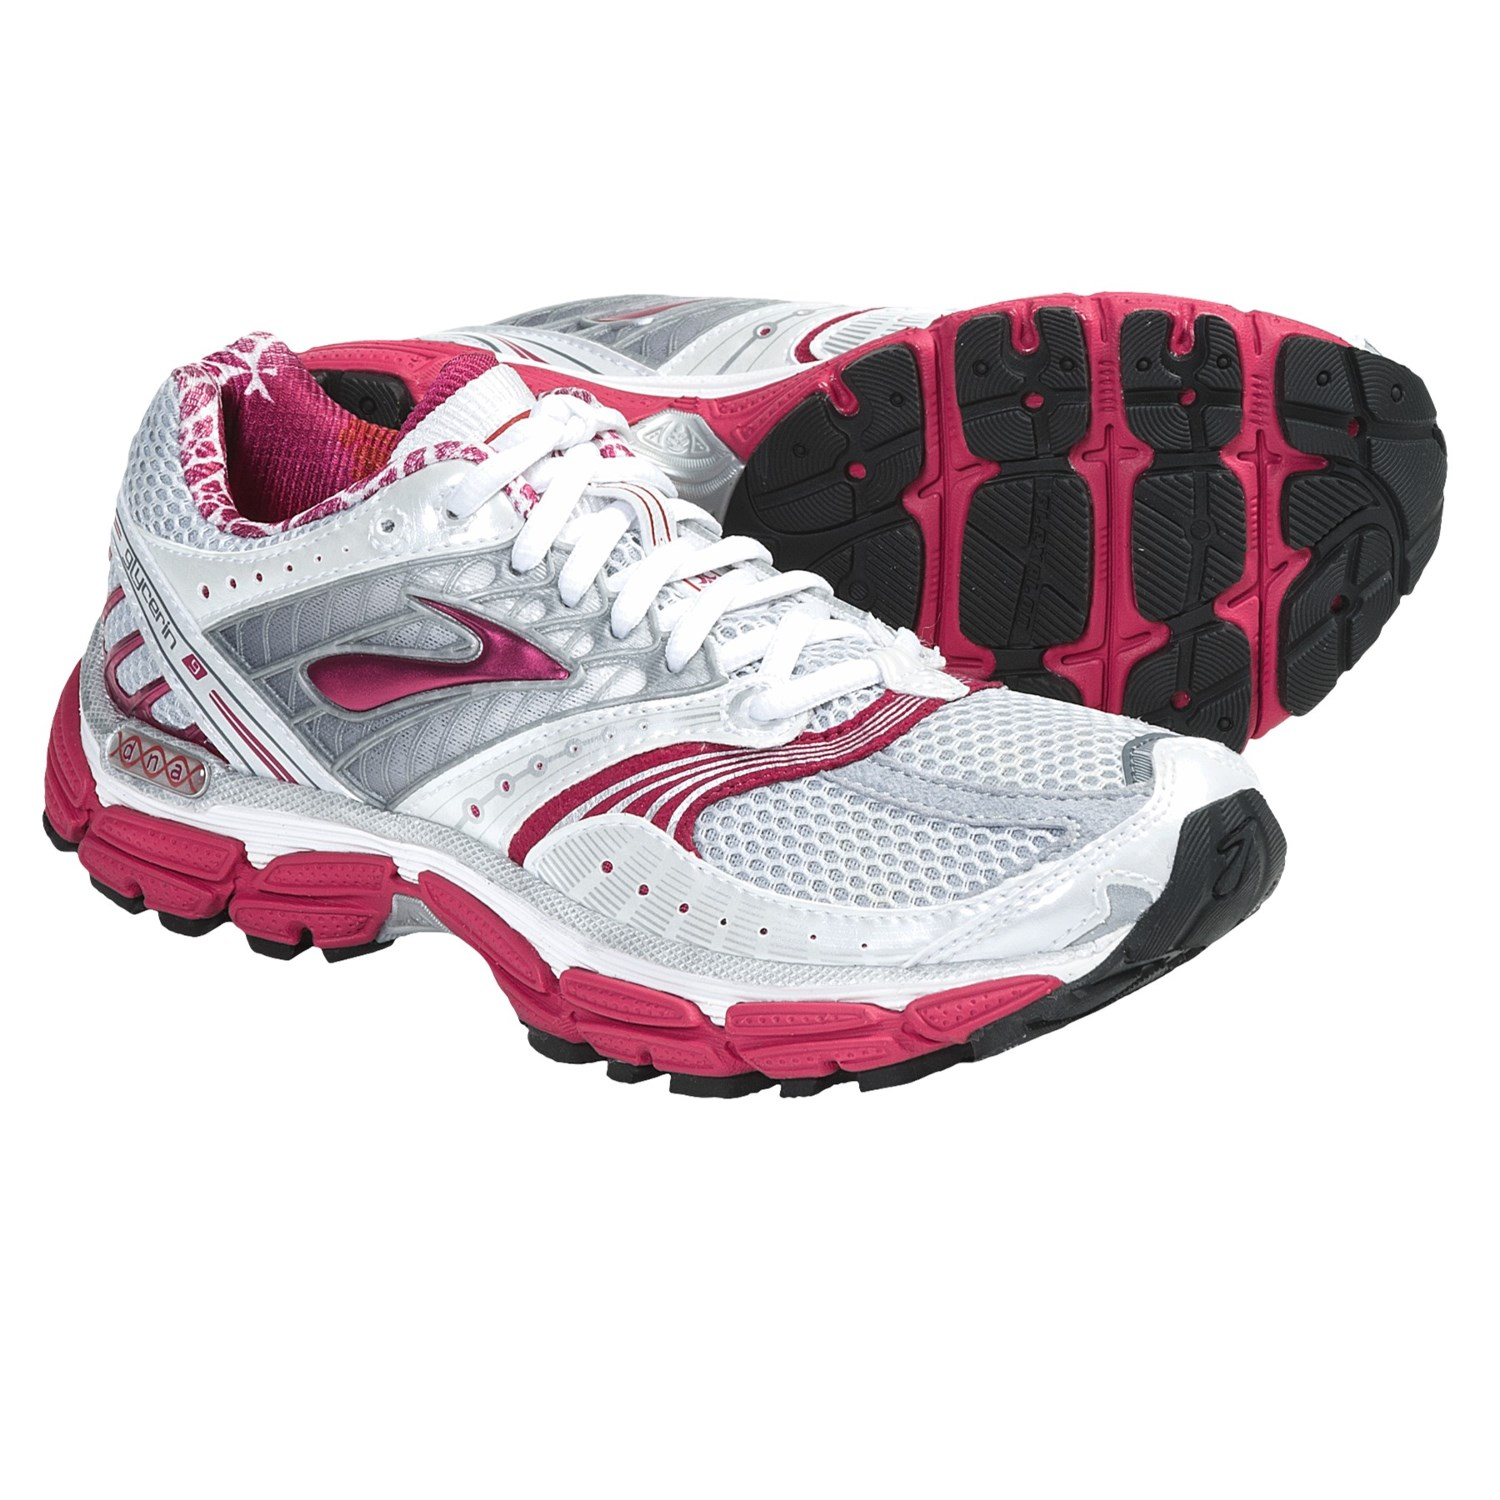 Women clothing stores Brooks glycerin womens shoes